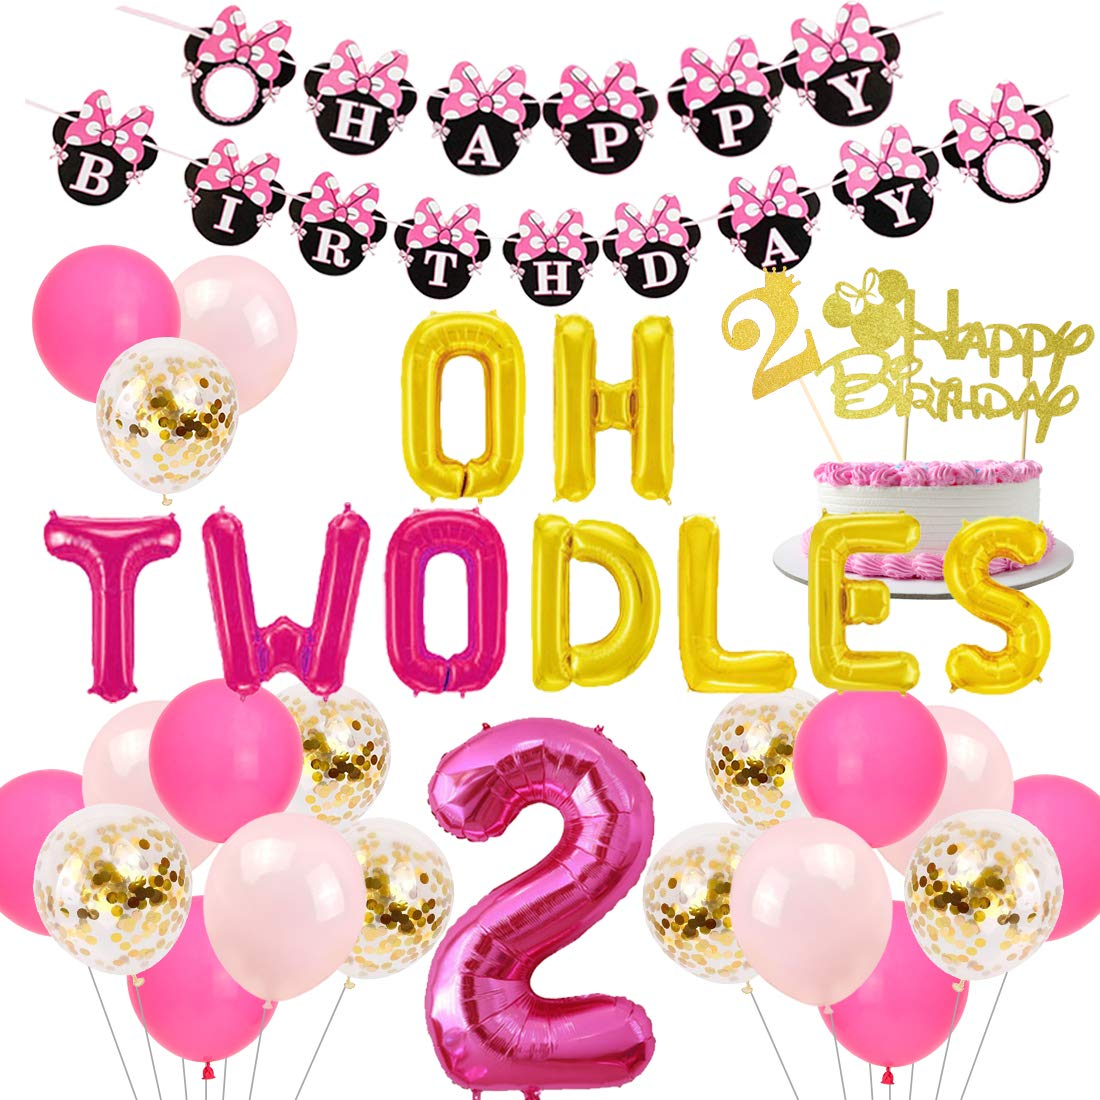 JOYMEMO 2nd Birthday Decorations Themed of Minnie Mouse for Girls, Oh Twodles Number 2 Foil Balloon, Happy Birthday Banner and Minnie Theme Cake ...